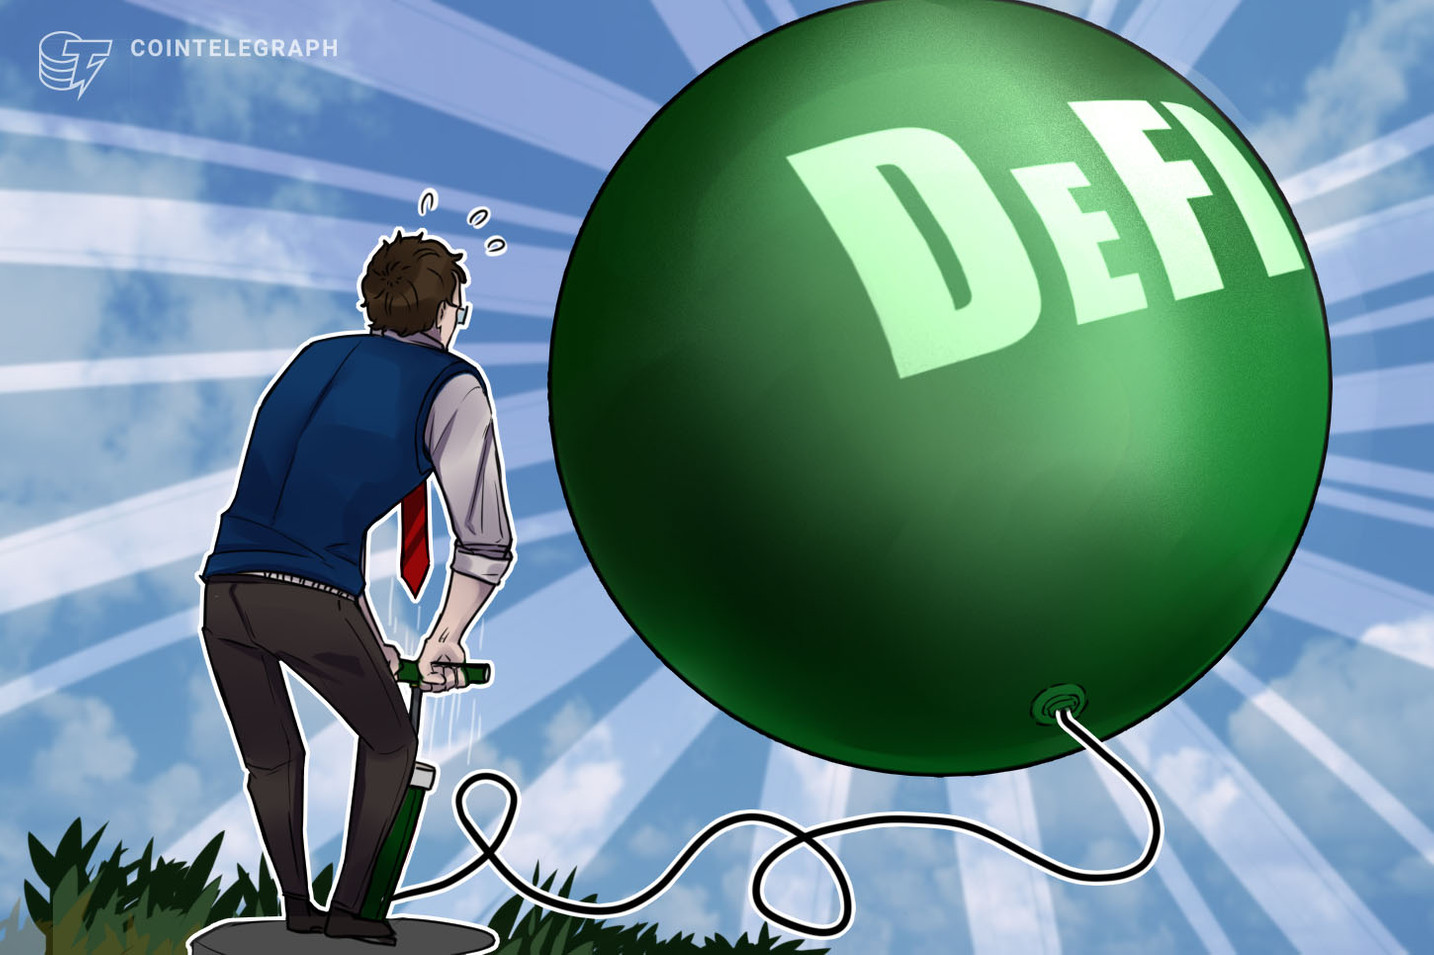 Messari's Ryan Selkis says DeFi bubble will pop soon